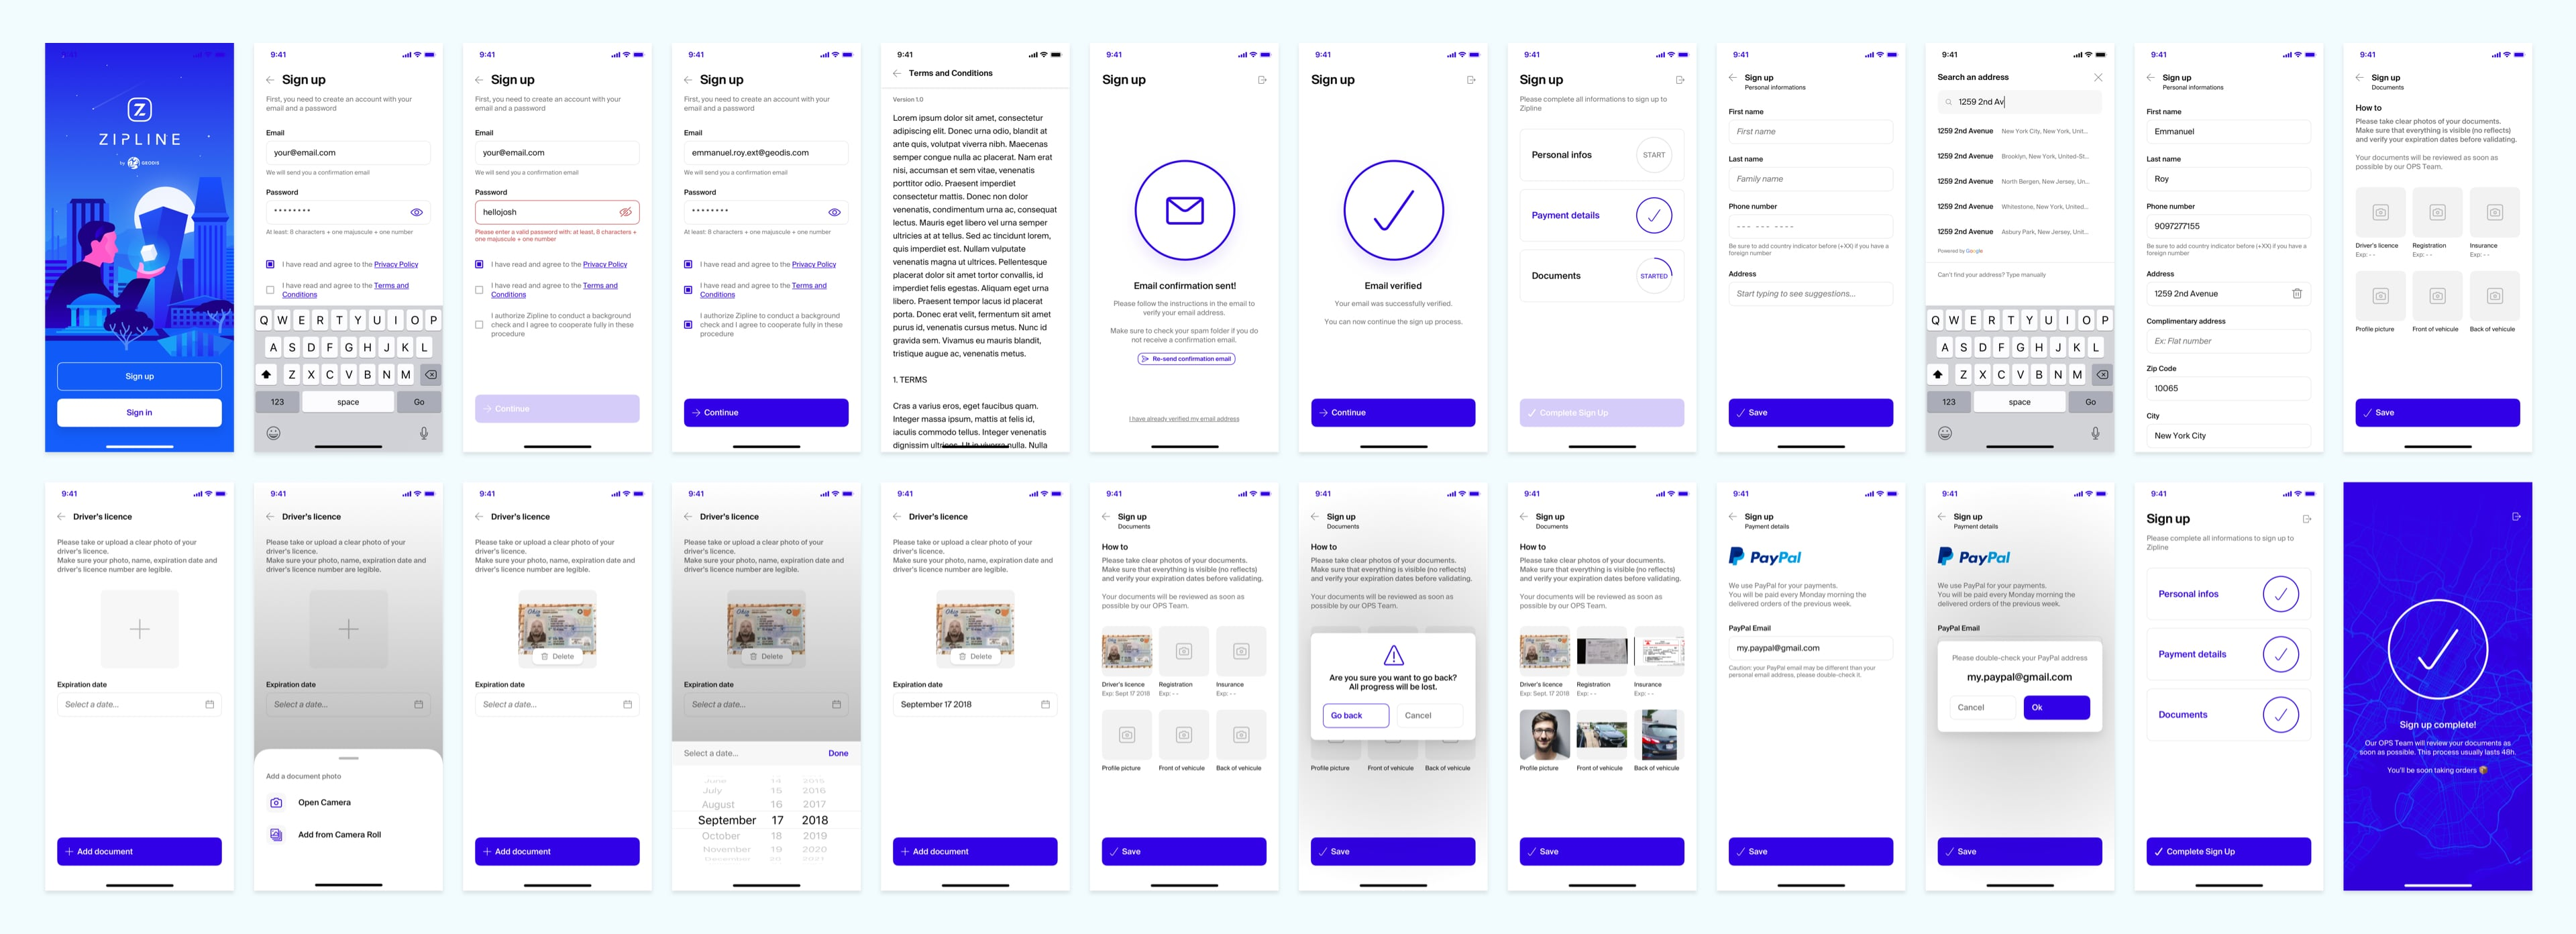 Onboarding – Signup Process